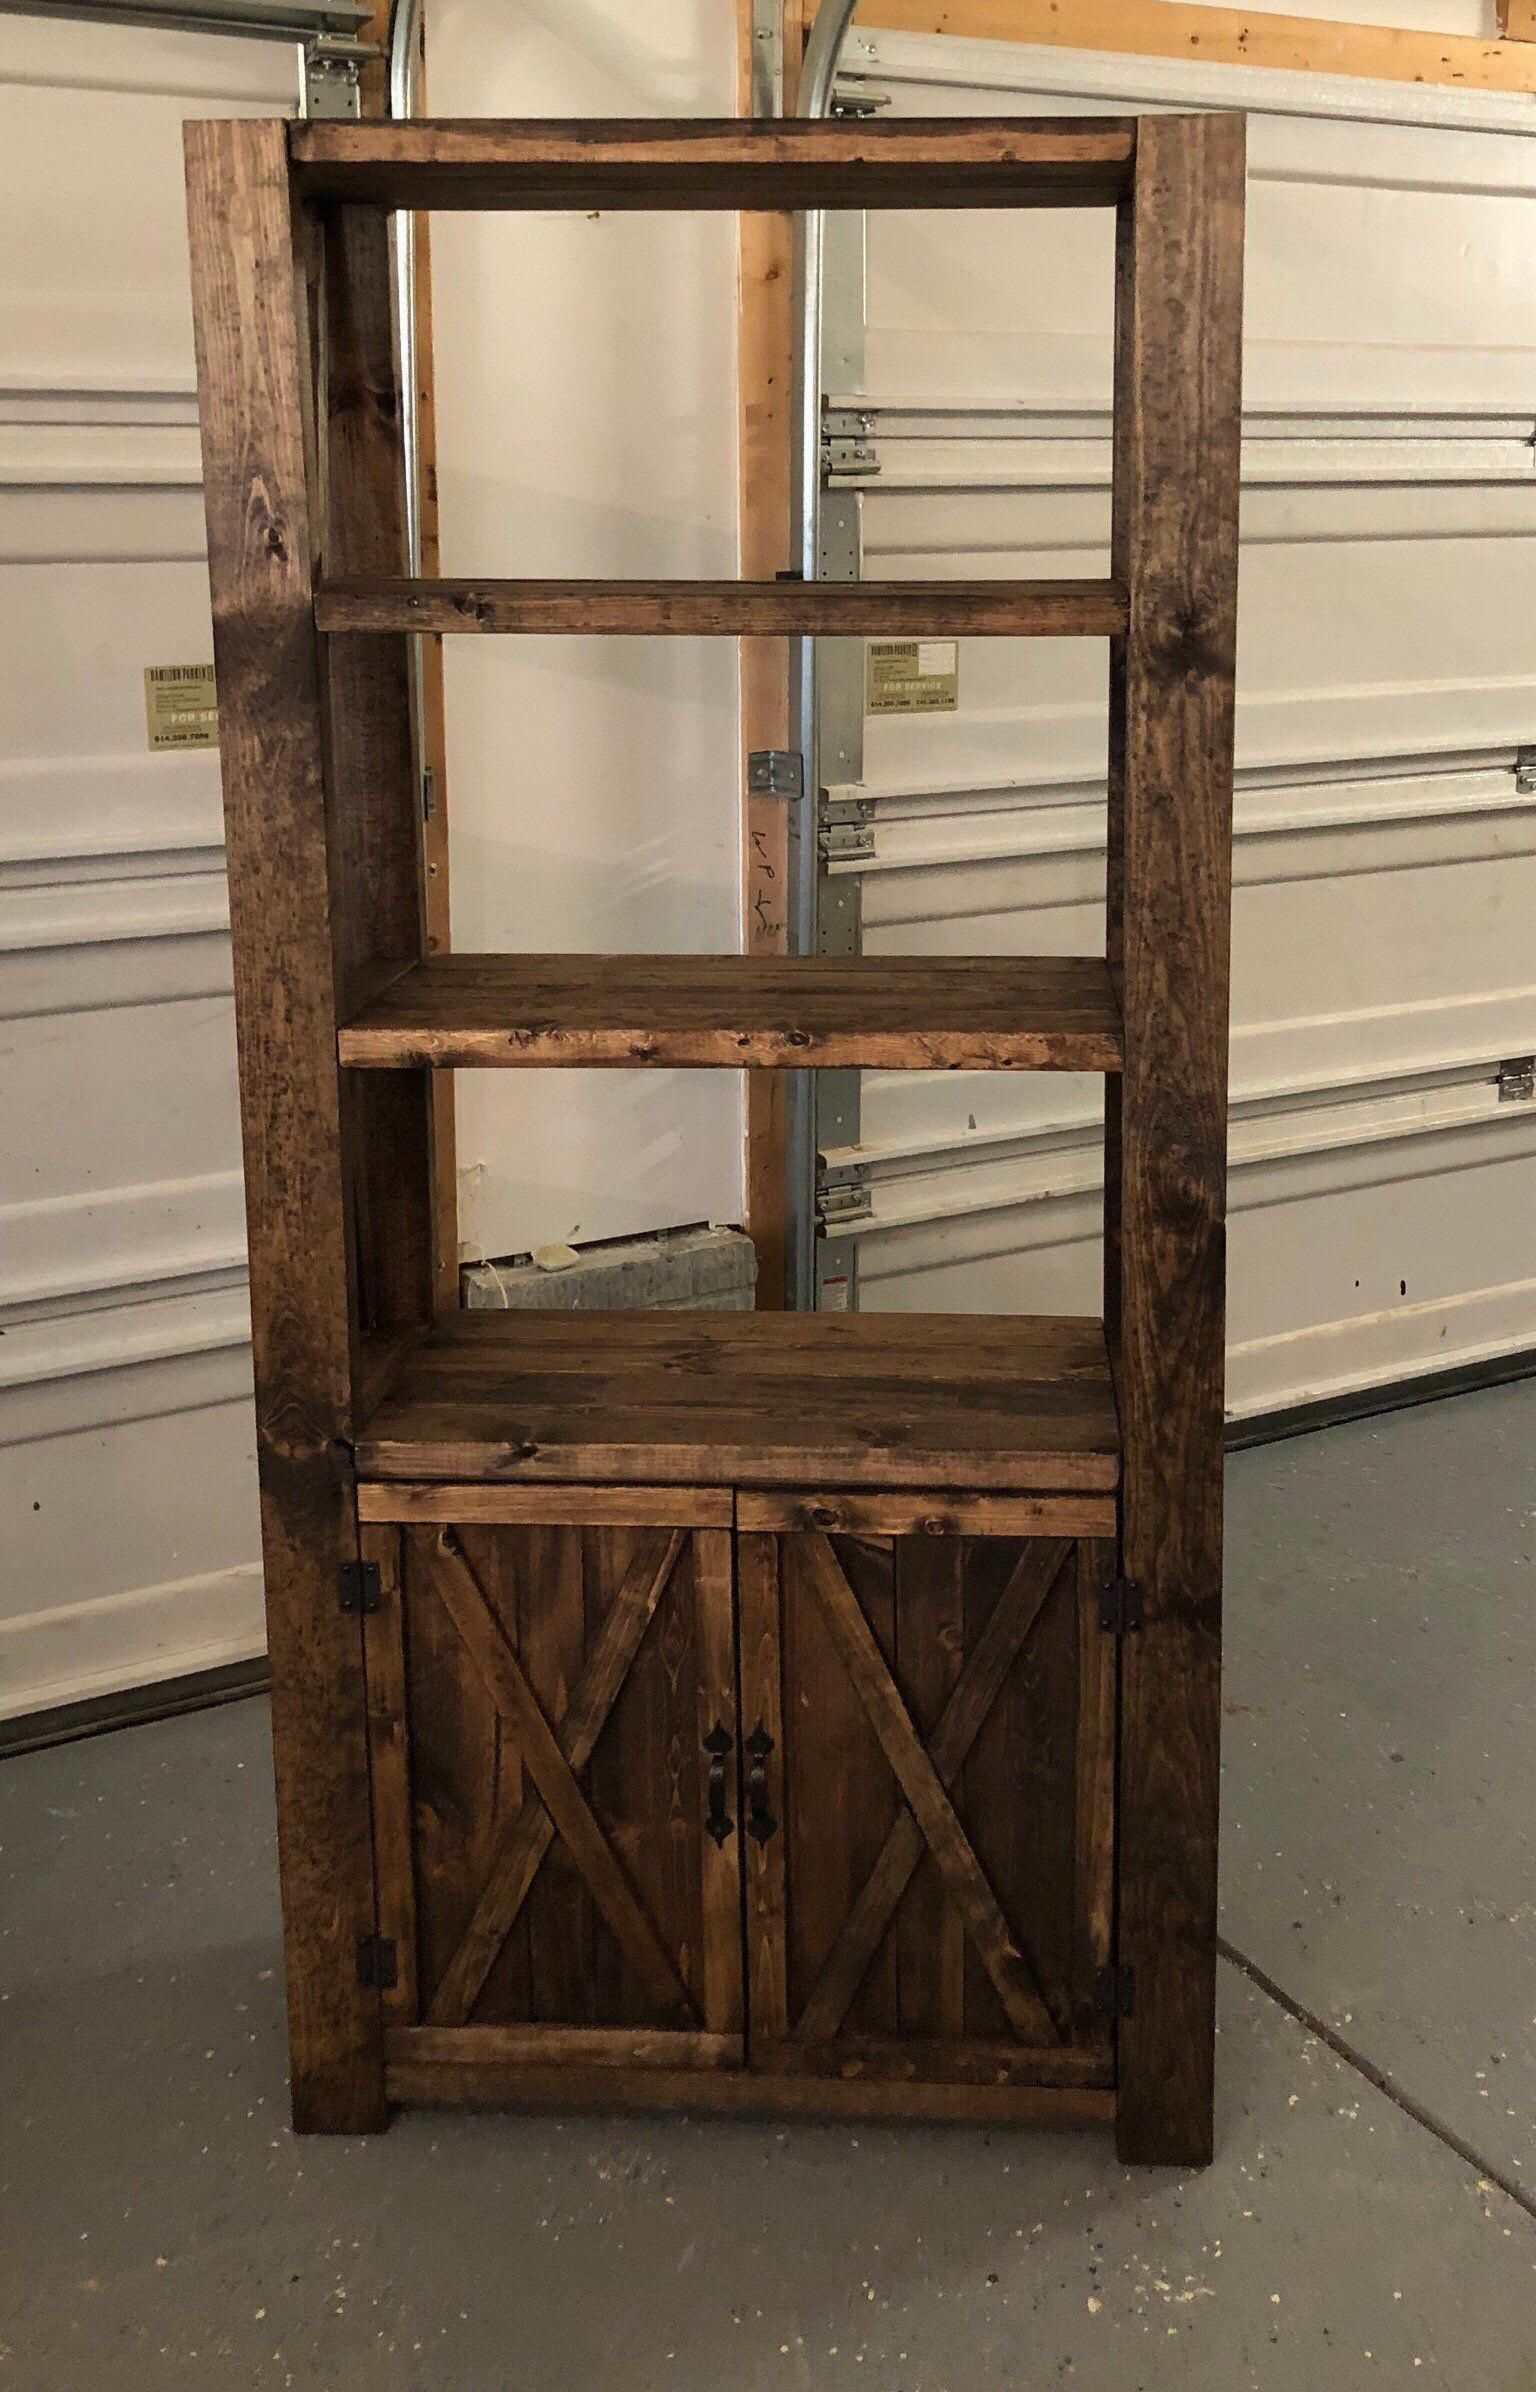 Rustic Home Decor Ideas Rusticdecortips Rustic Shelves Rustic Bookcase Rustic Bookshelf